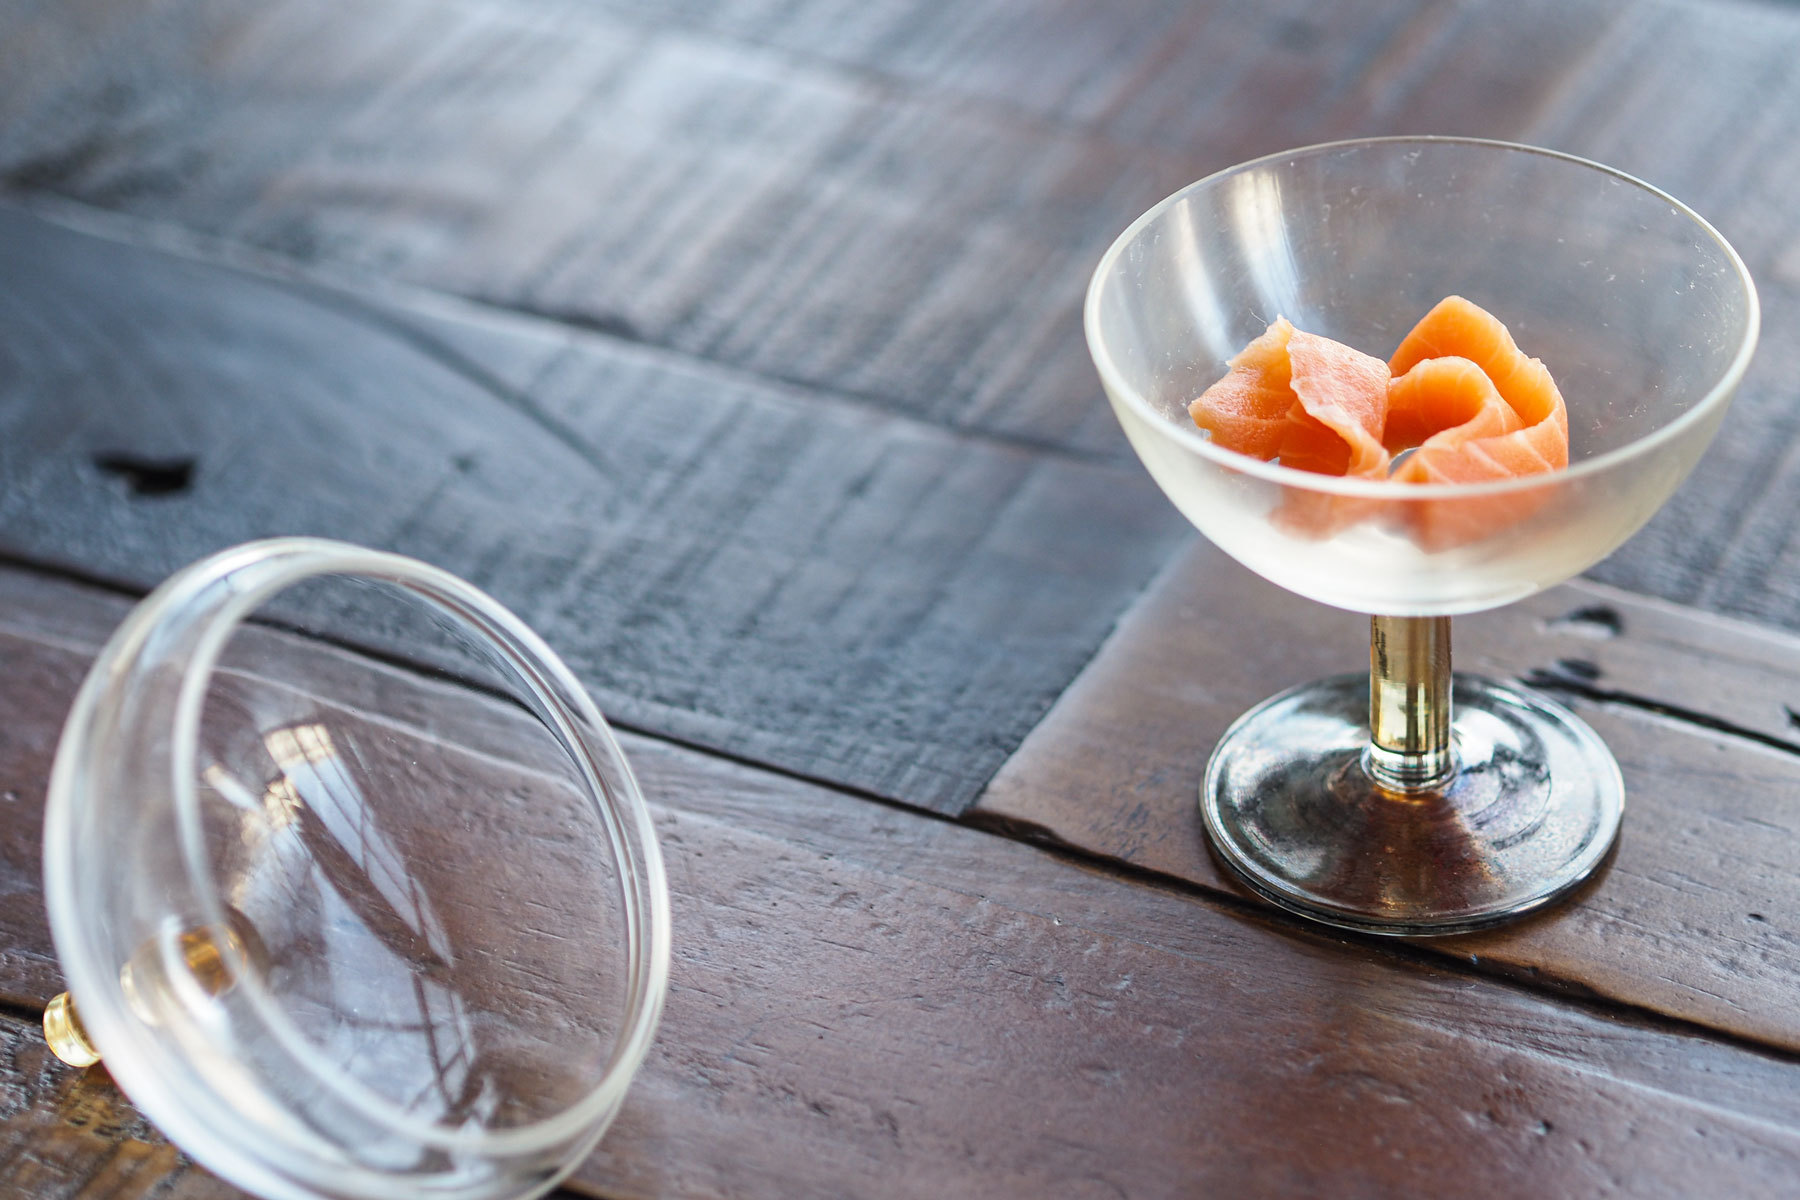 Salmon pieces in an ornate glass smoking cup